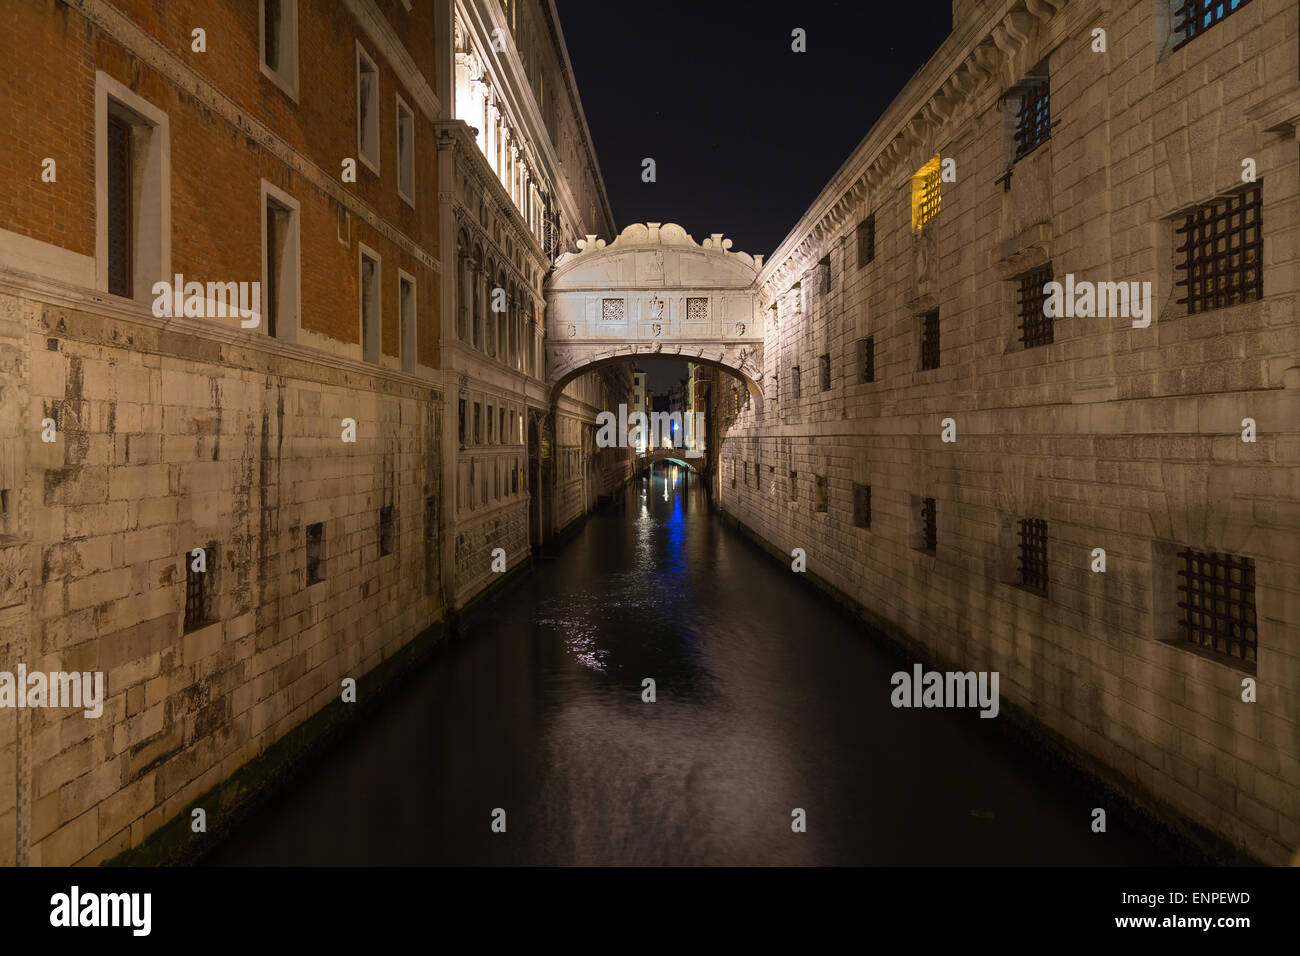 A view of the Bridge of Sighs (Ponte dei Sospiri) in Venice at night. There is space for text. - Stock Image